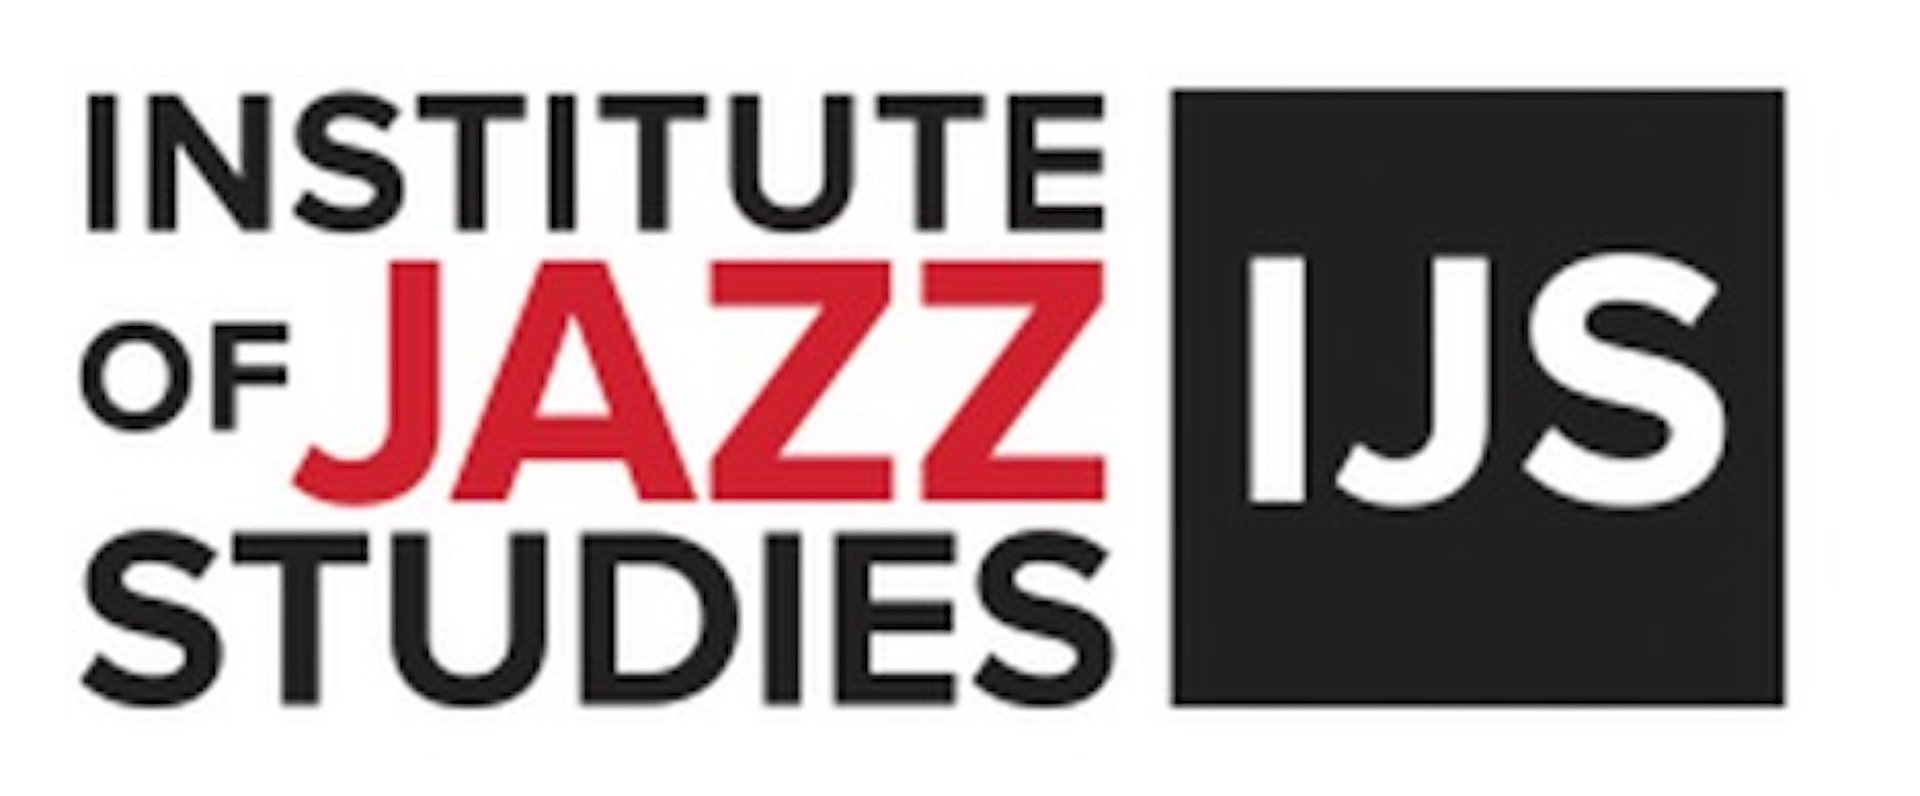 Institute of Jazz Studies logo.jpg